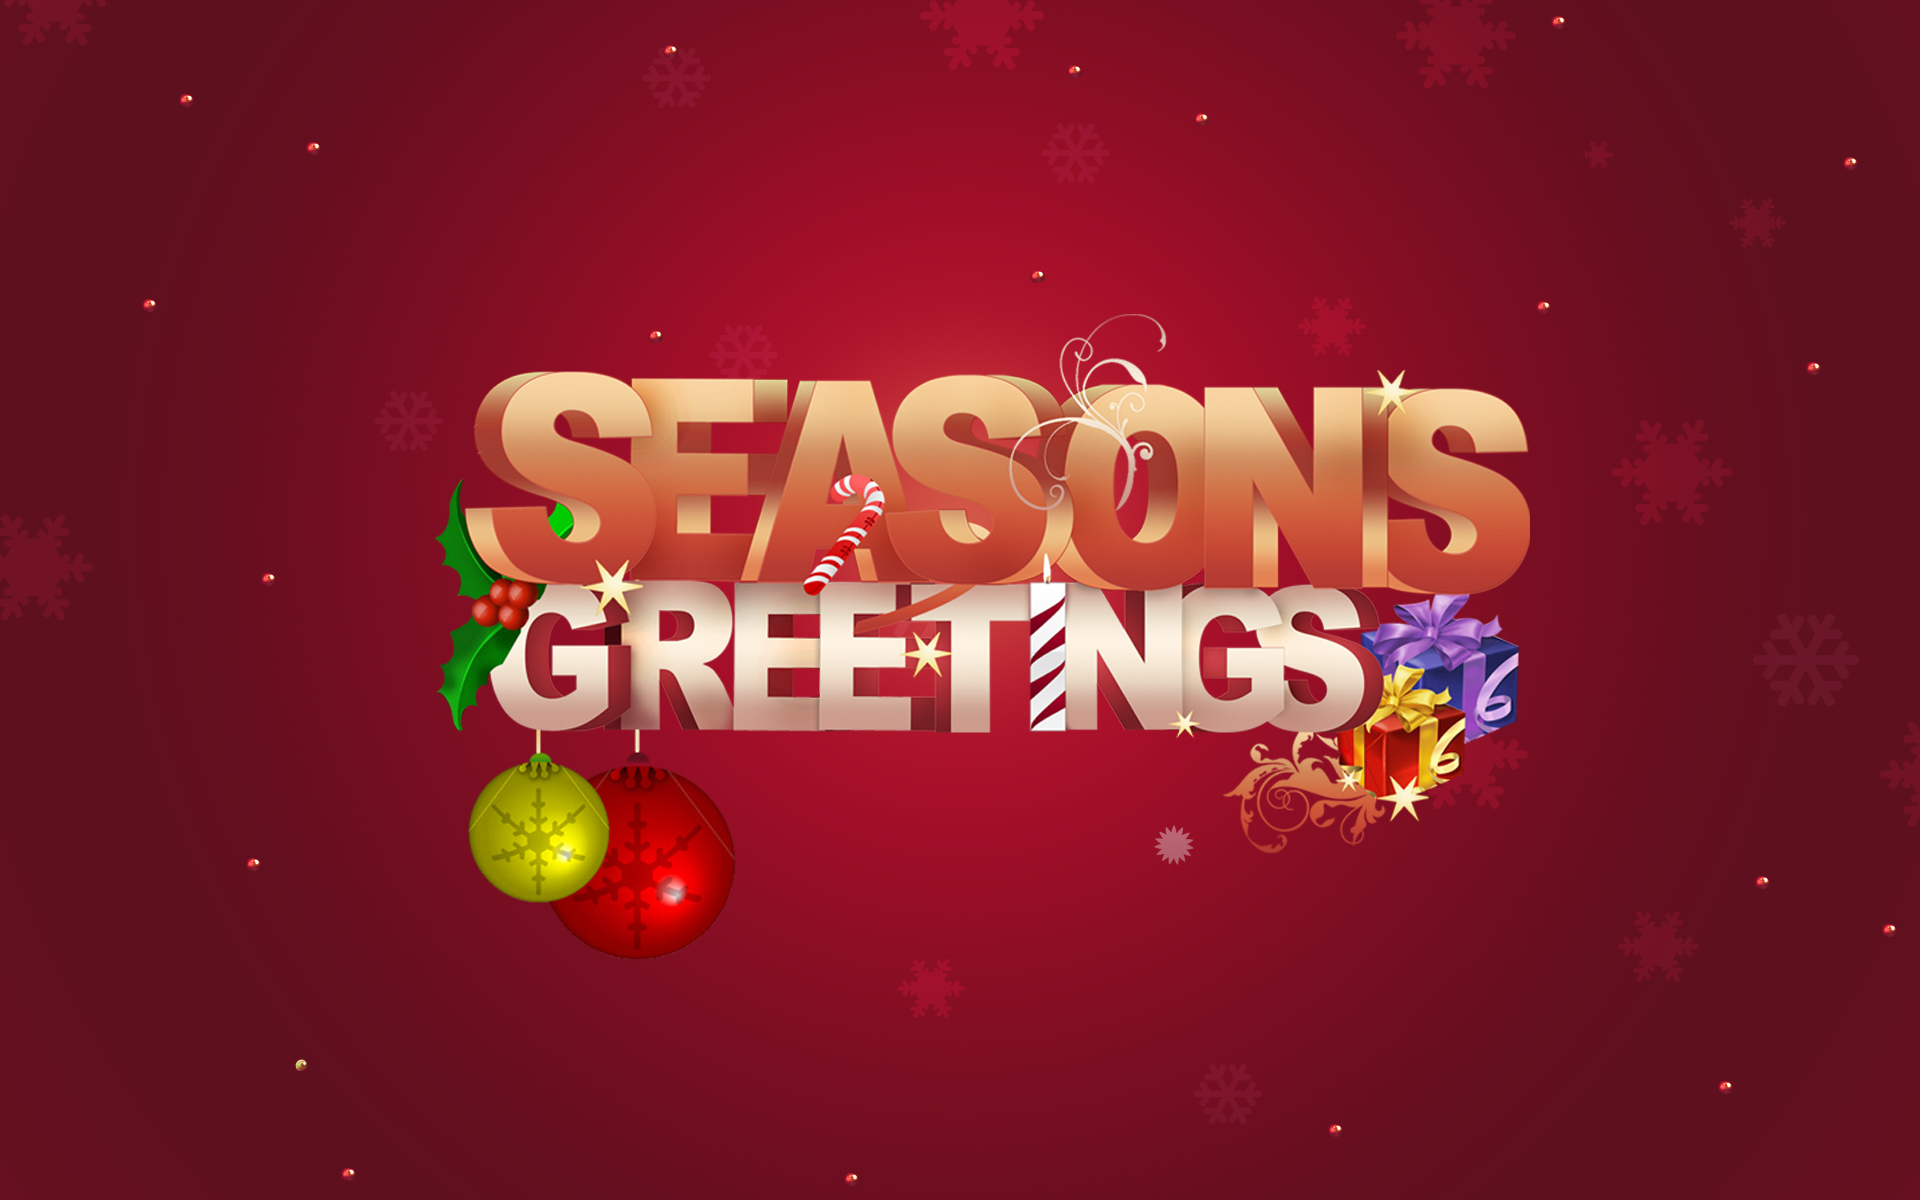 seasons_greetings_2009_by_veeshanthrillers